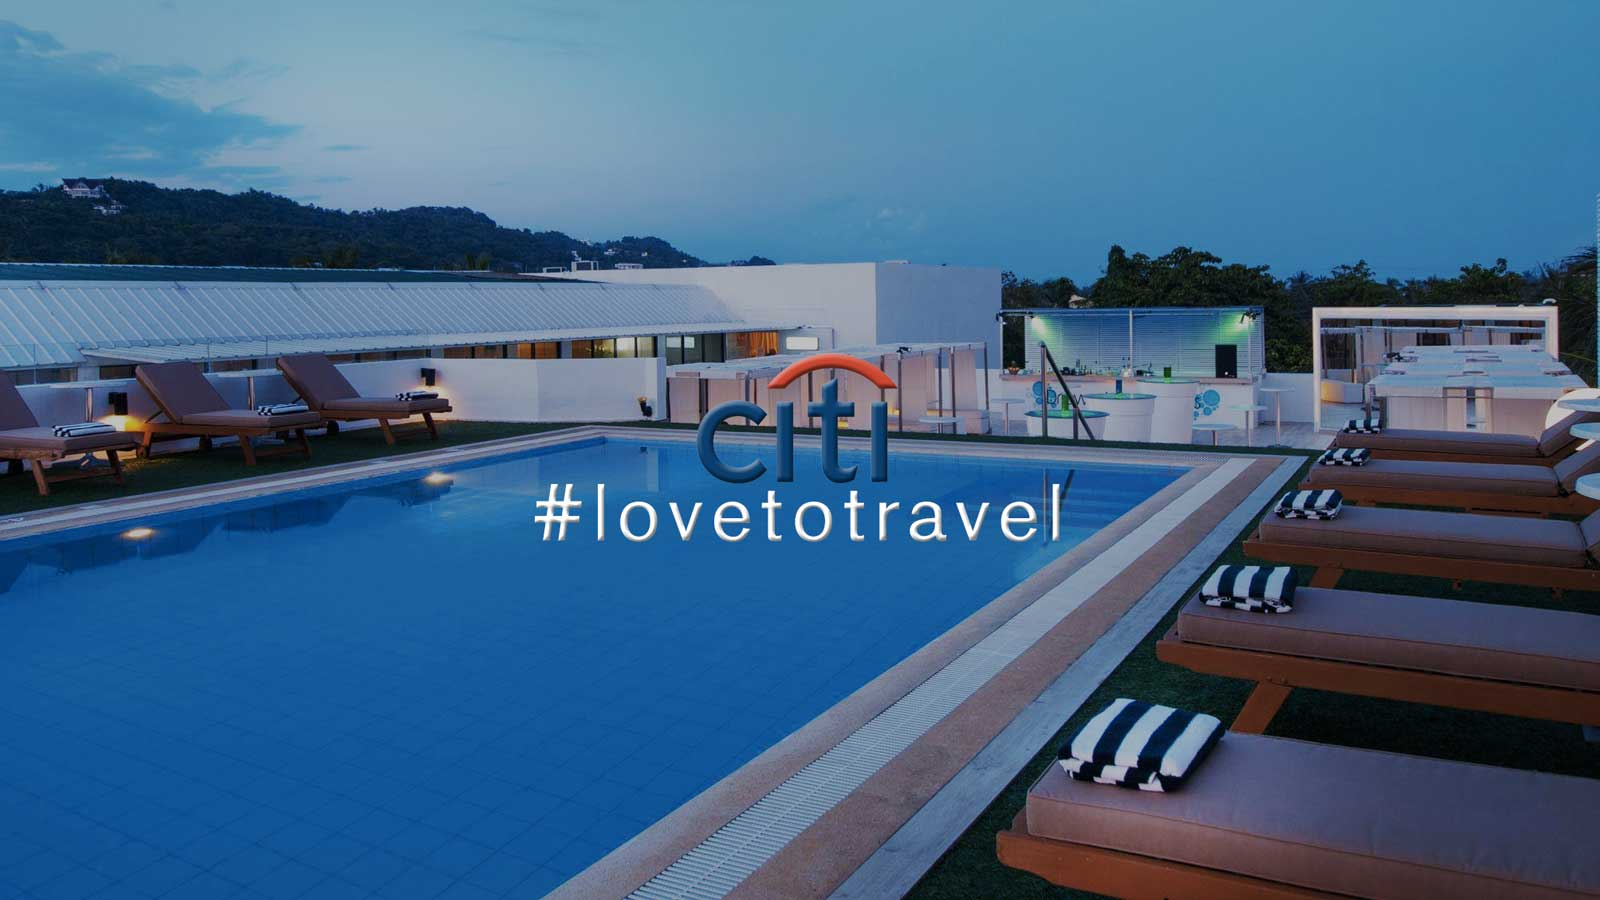 #lovetotravel with Citi credit cards